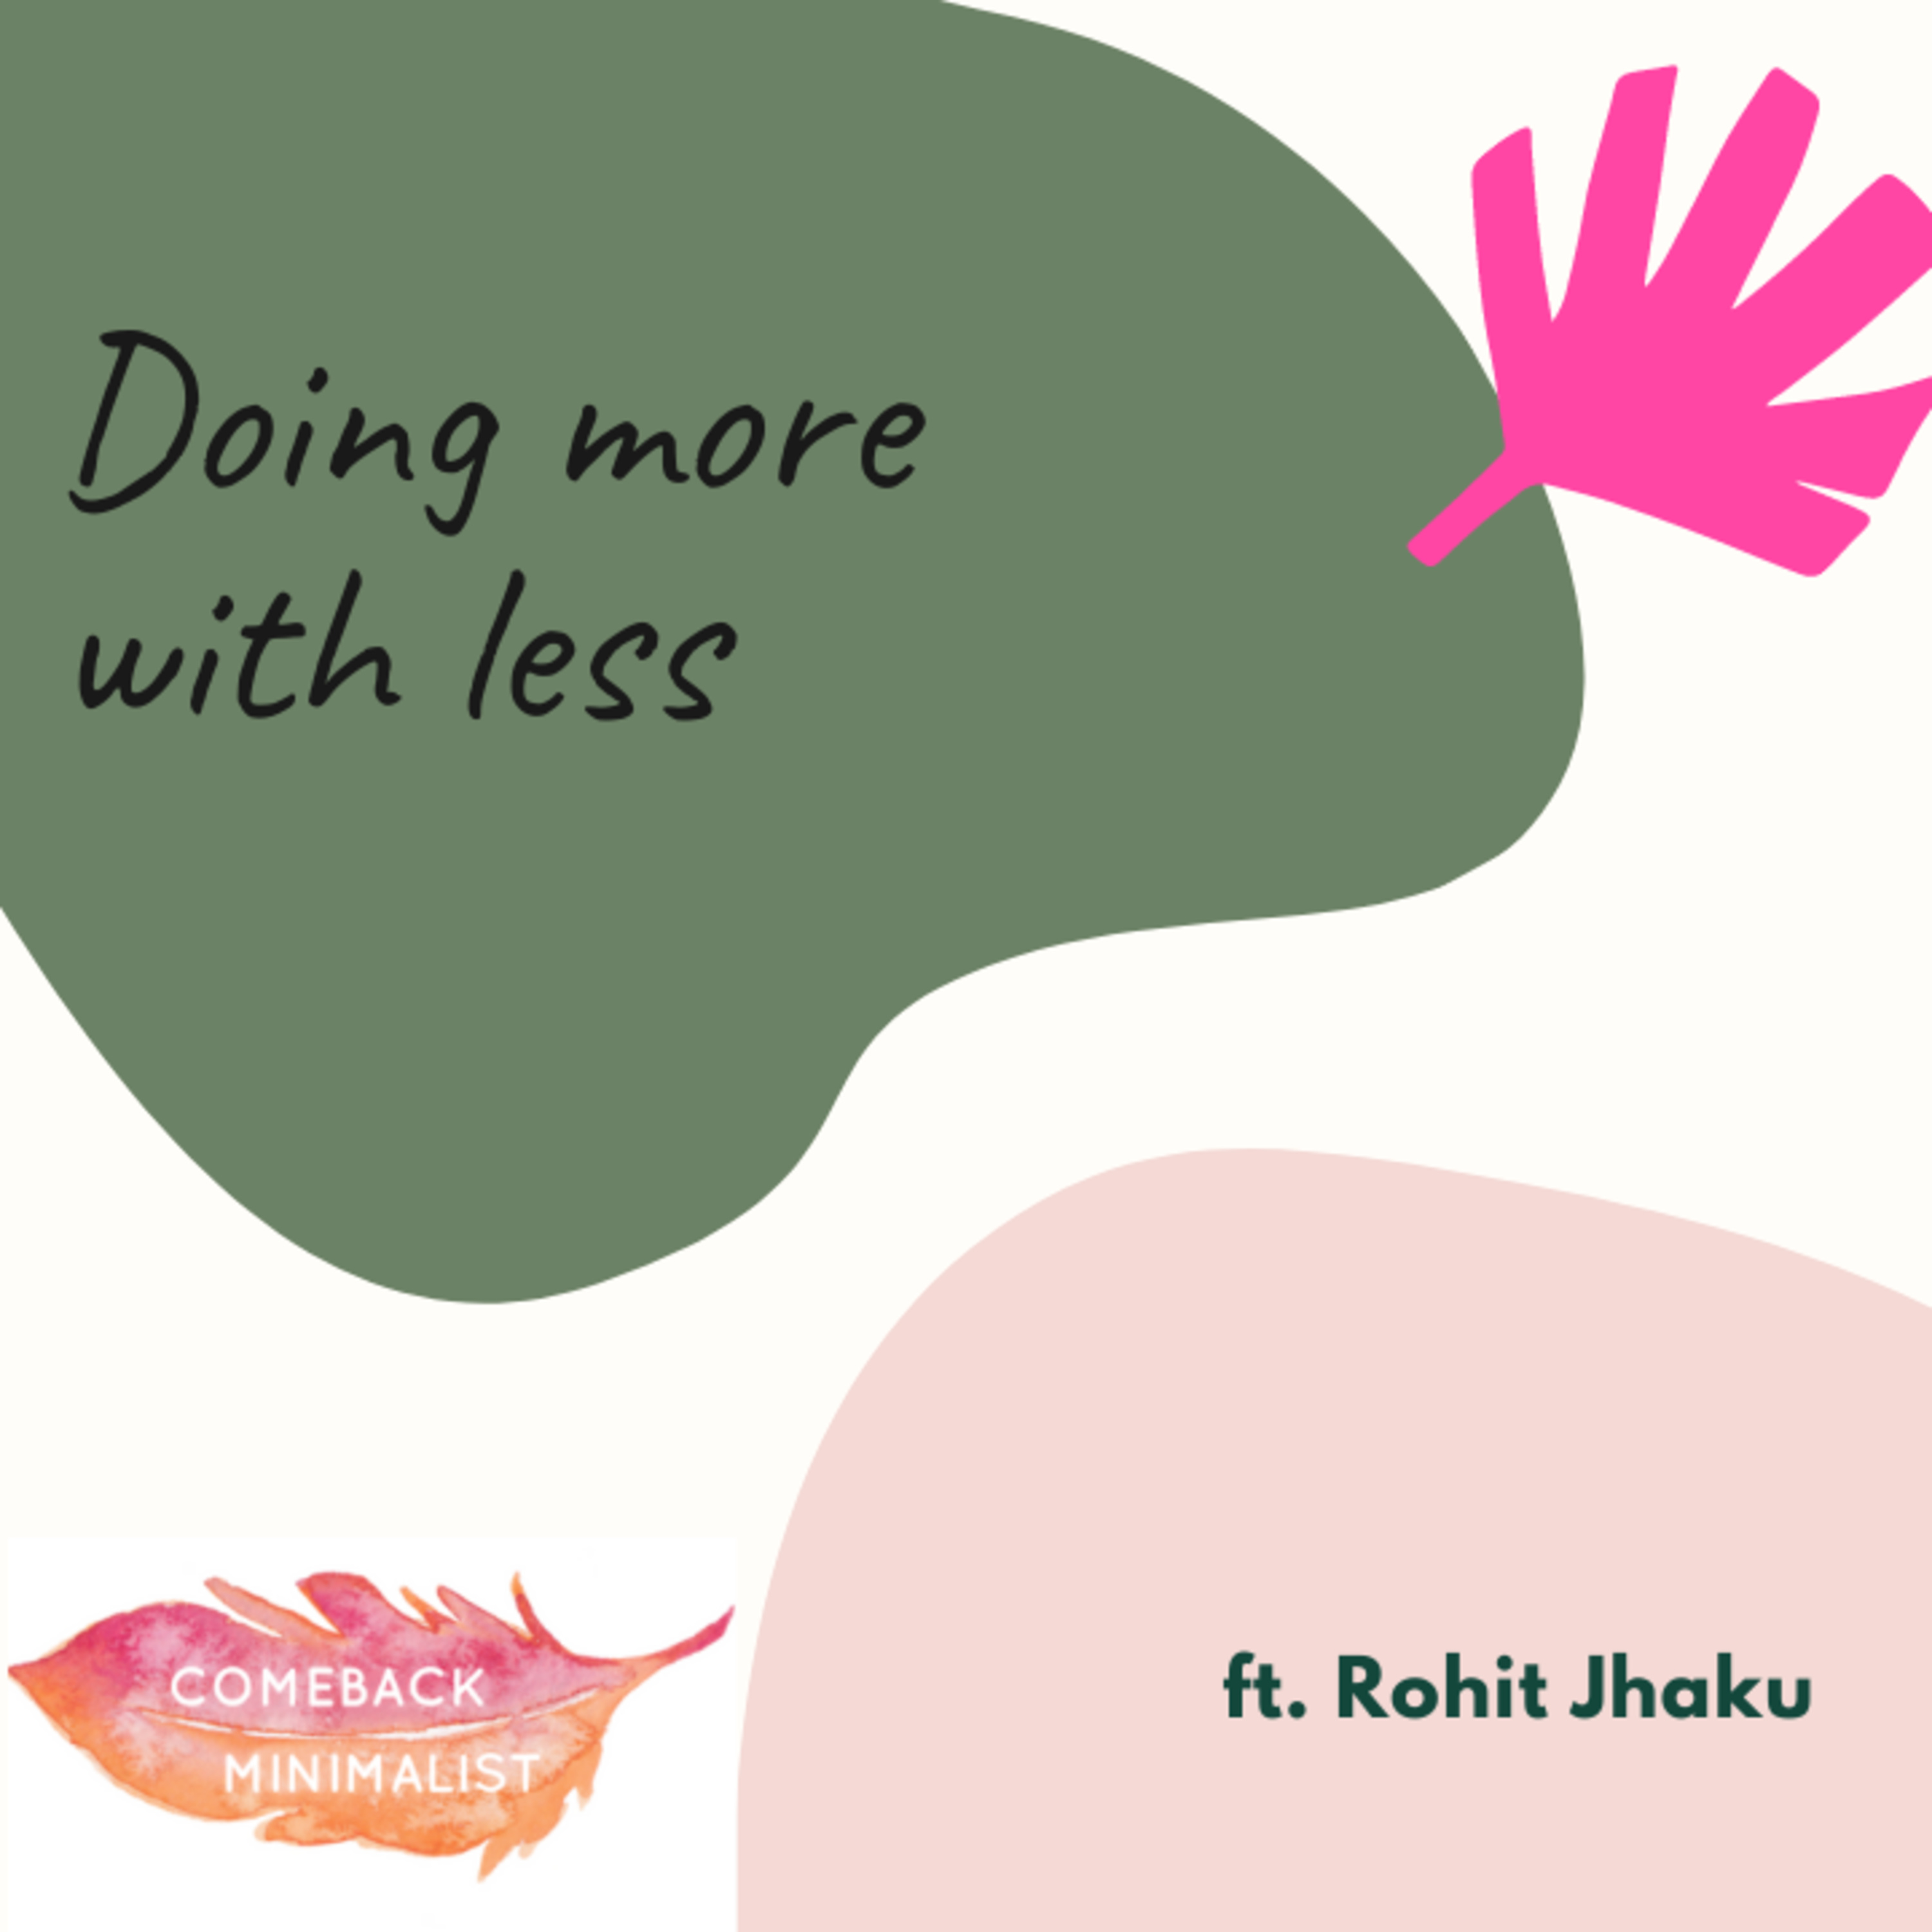 S2 E12: Doing more with less ft. Rohit Jakhu